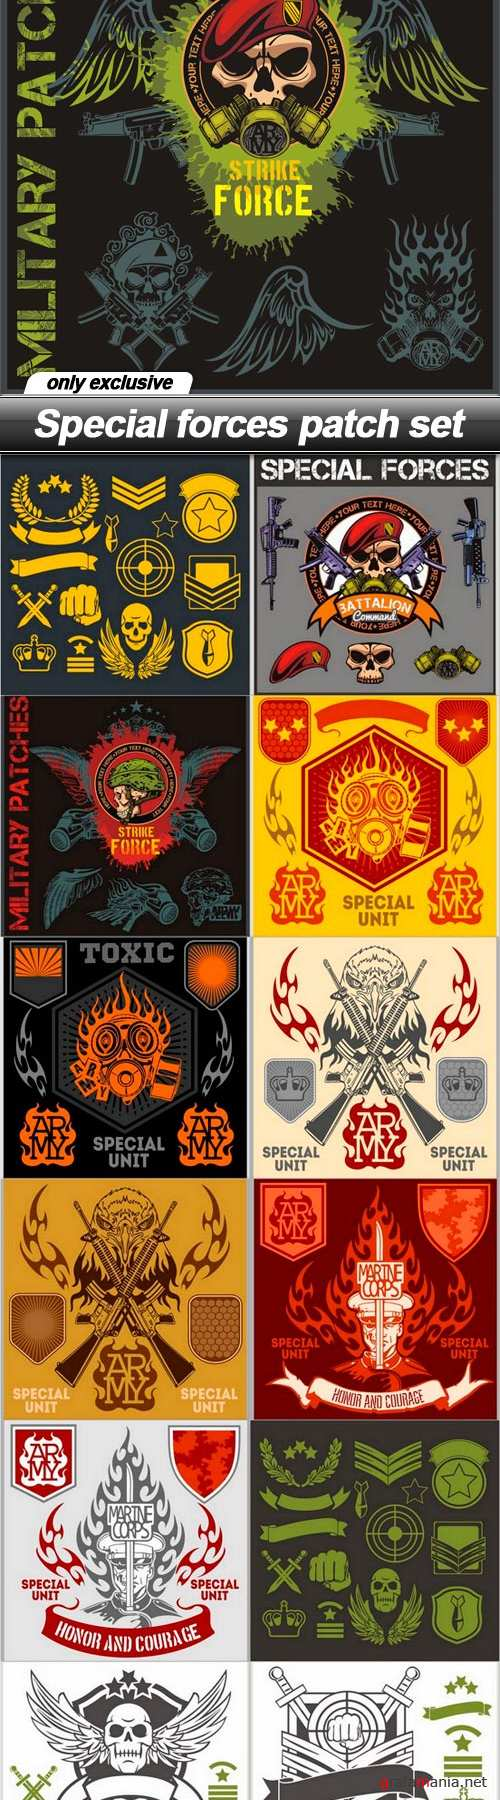 Special forces patch set - 13 EPS